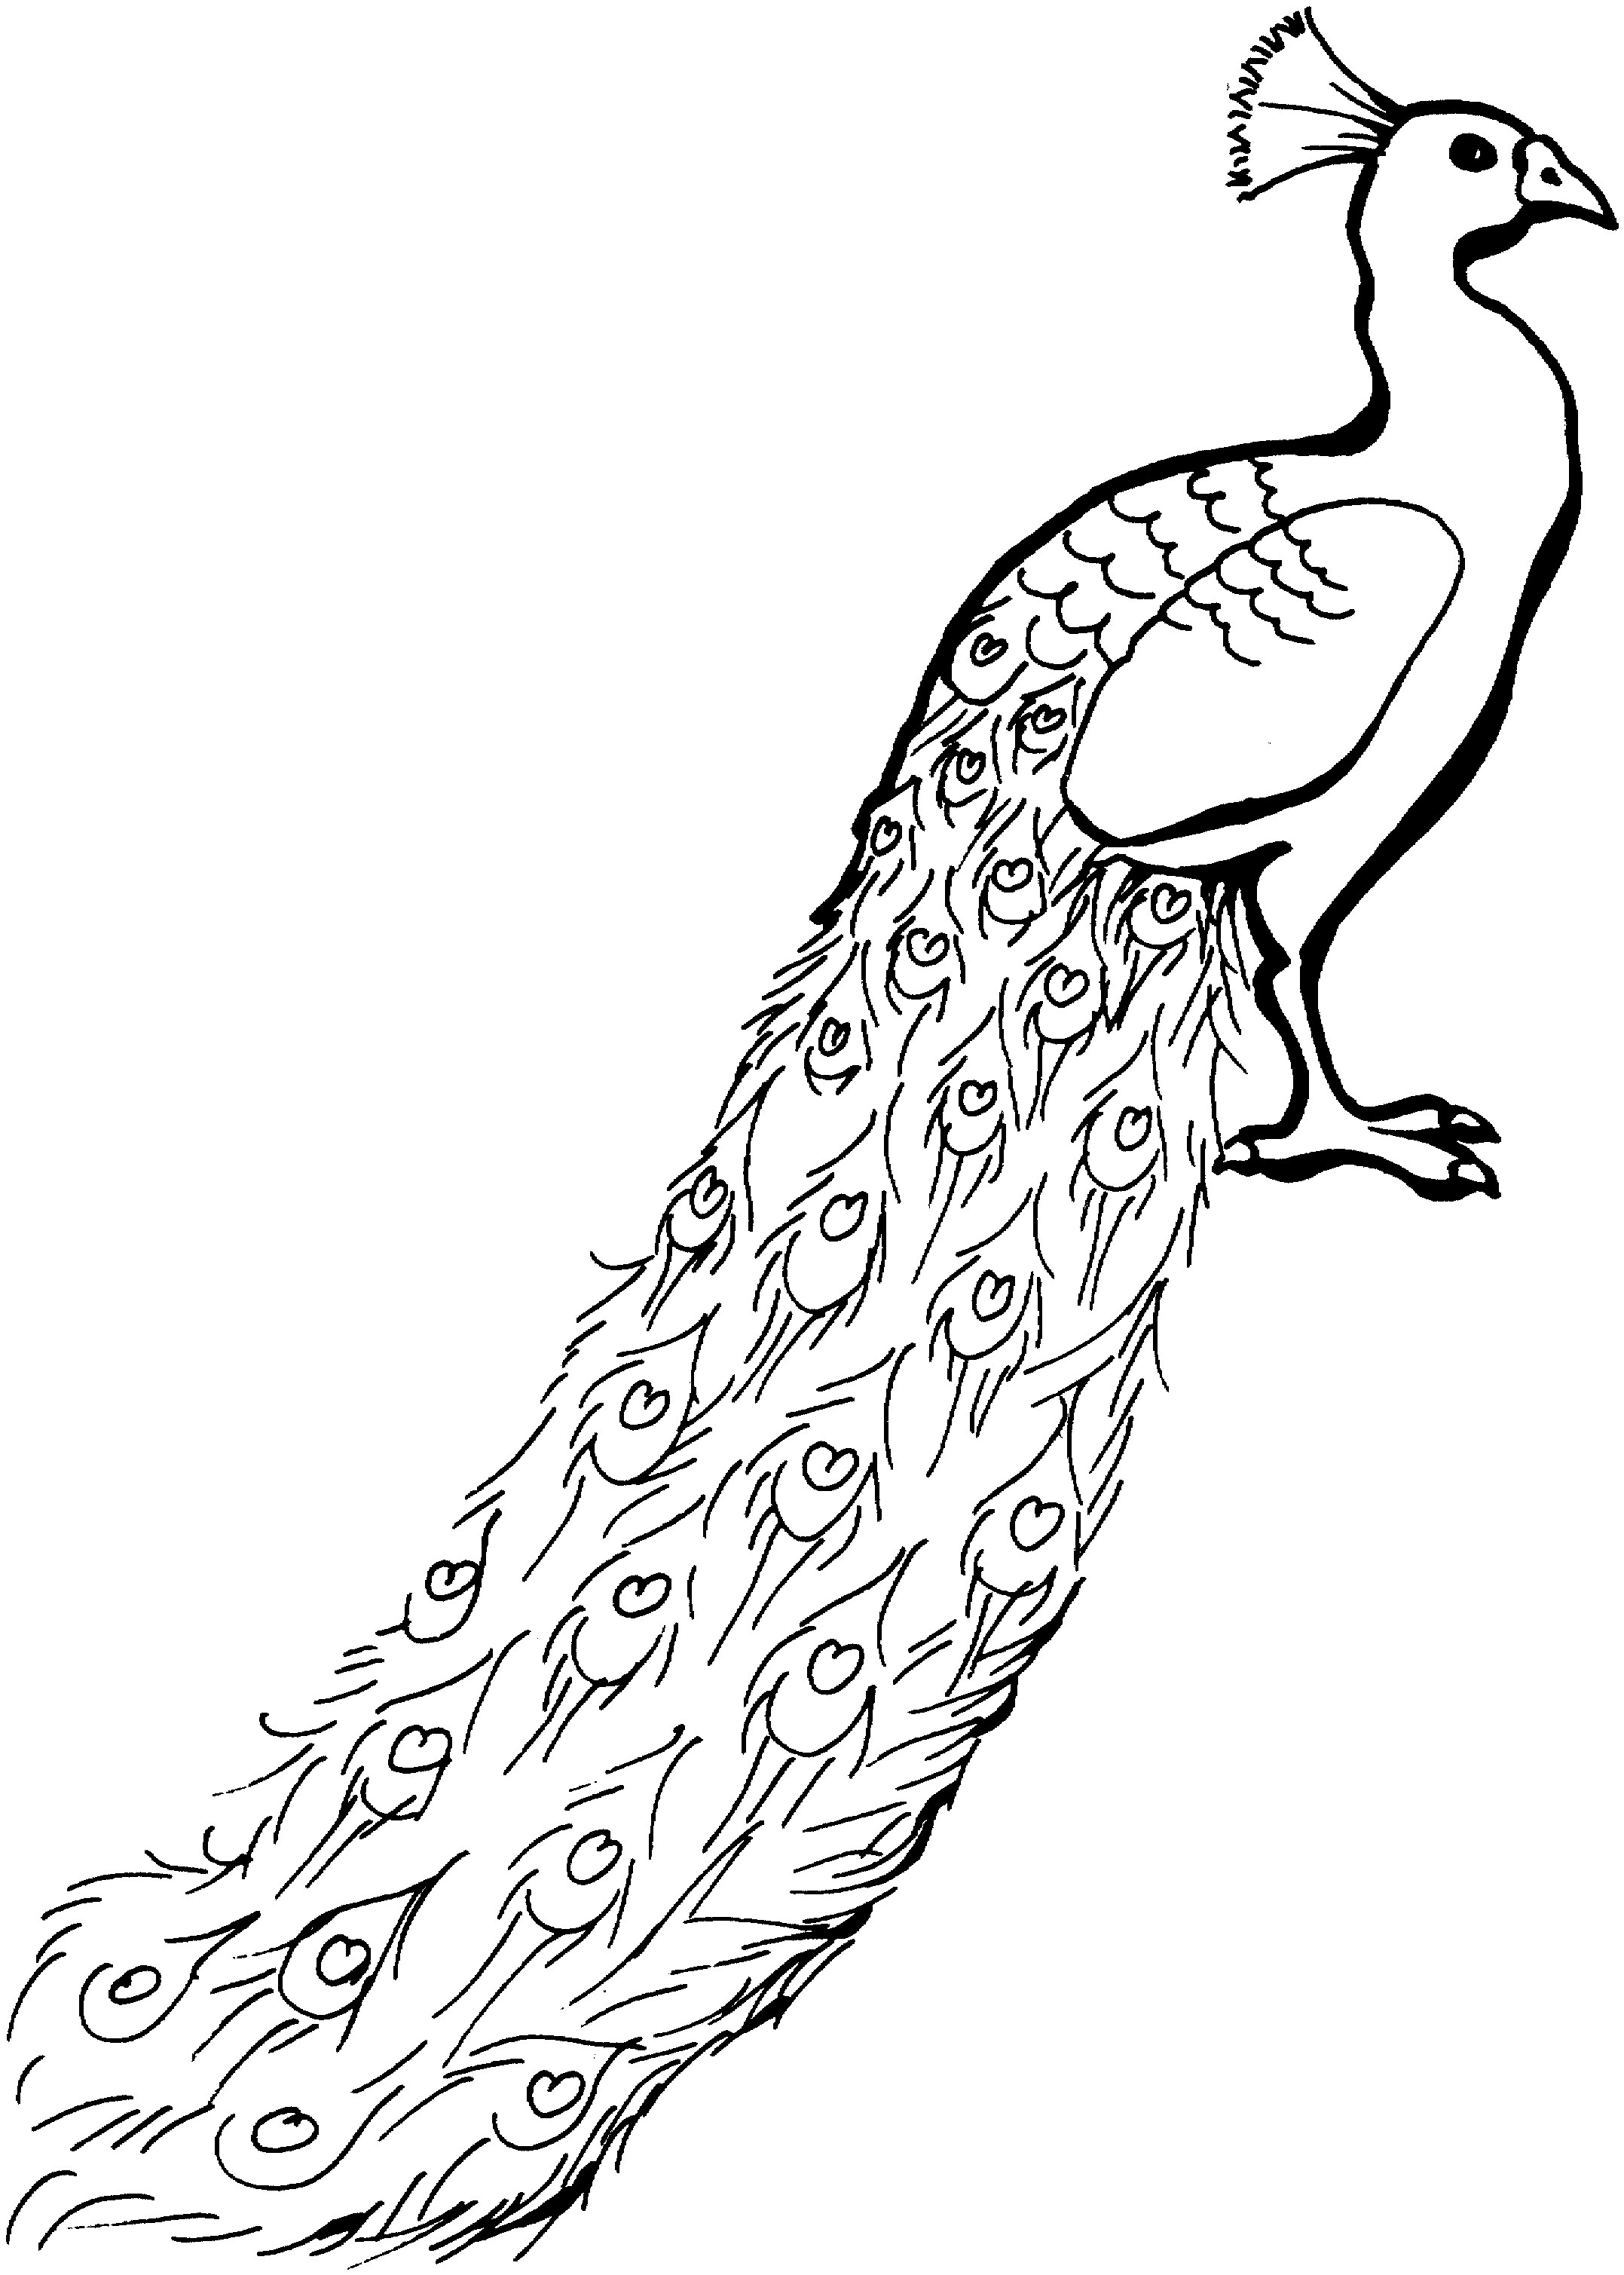 Drawn peacock coloring page Pages Coloring Full Pages coloring